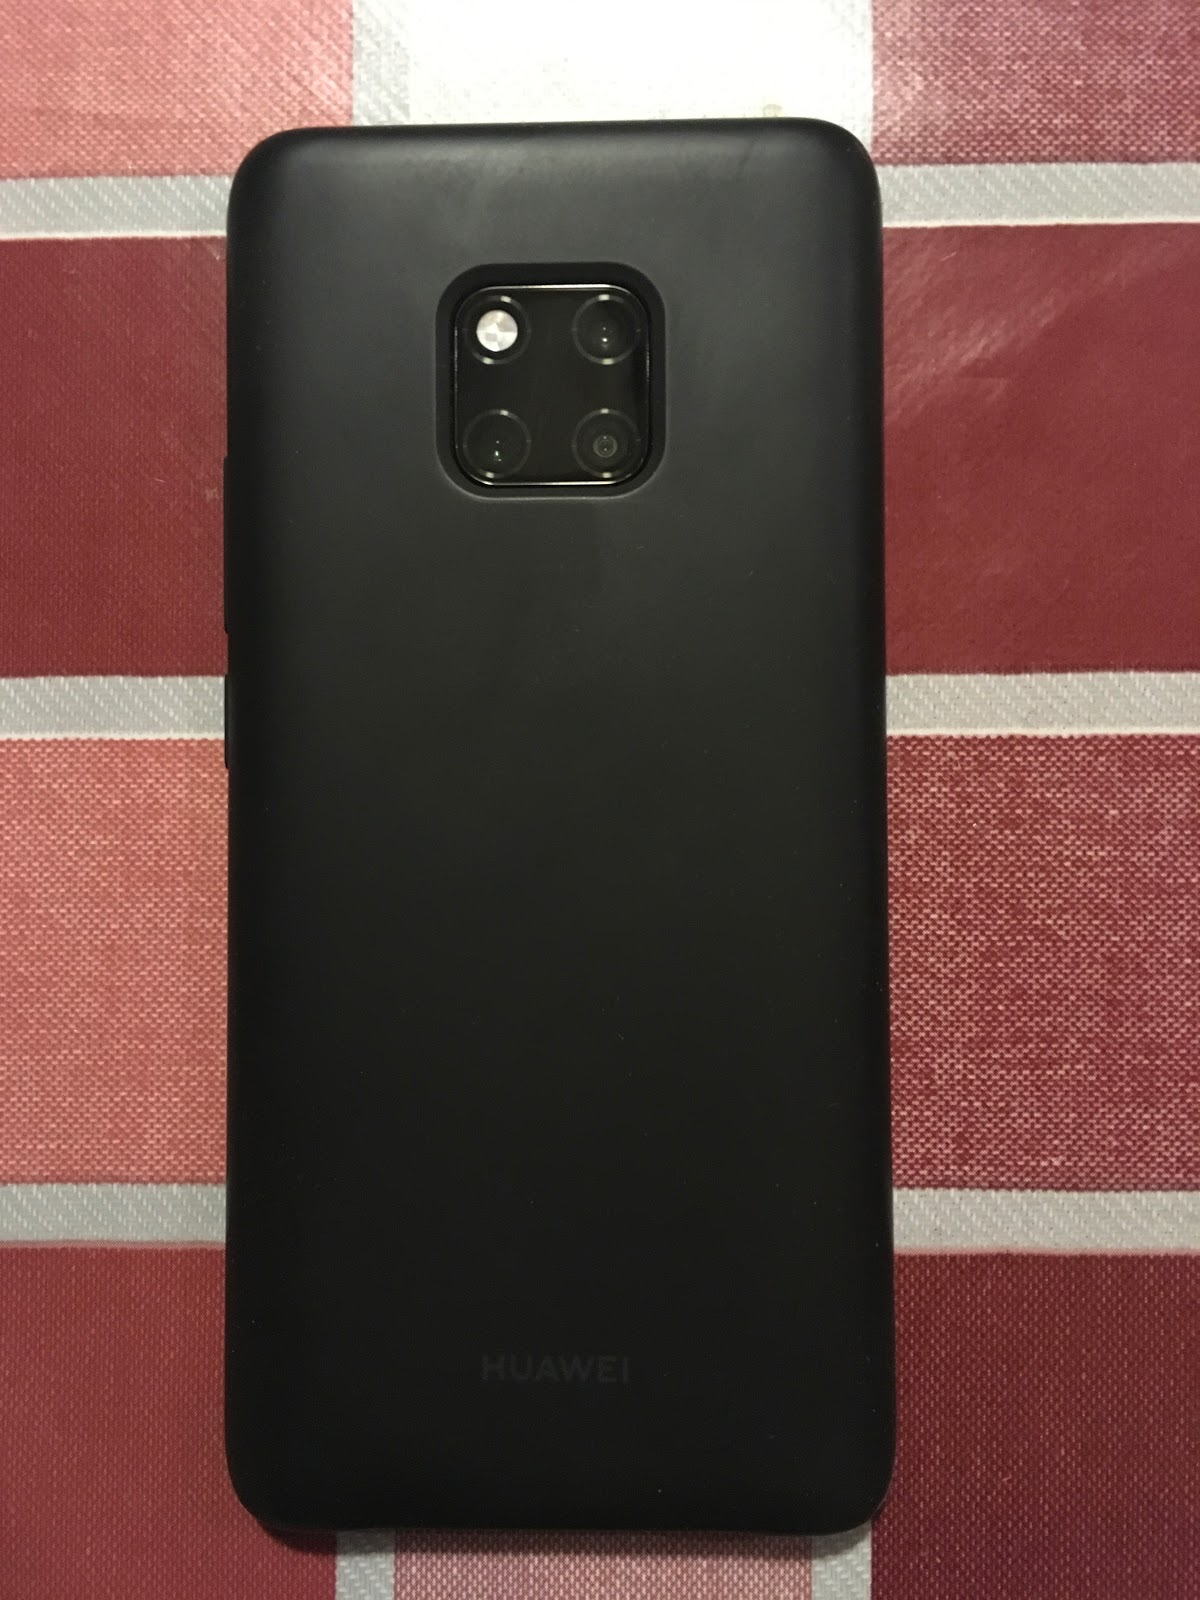 Huawei Mate 20 Pro REVIEW - Brings a whole new meaning to